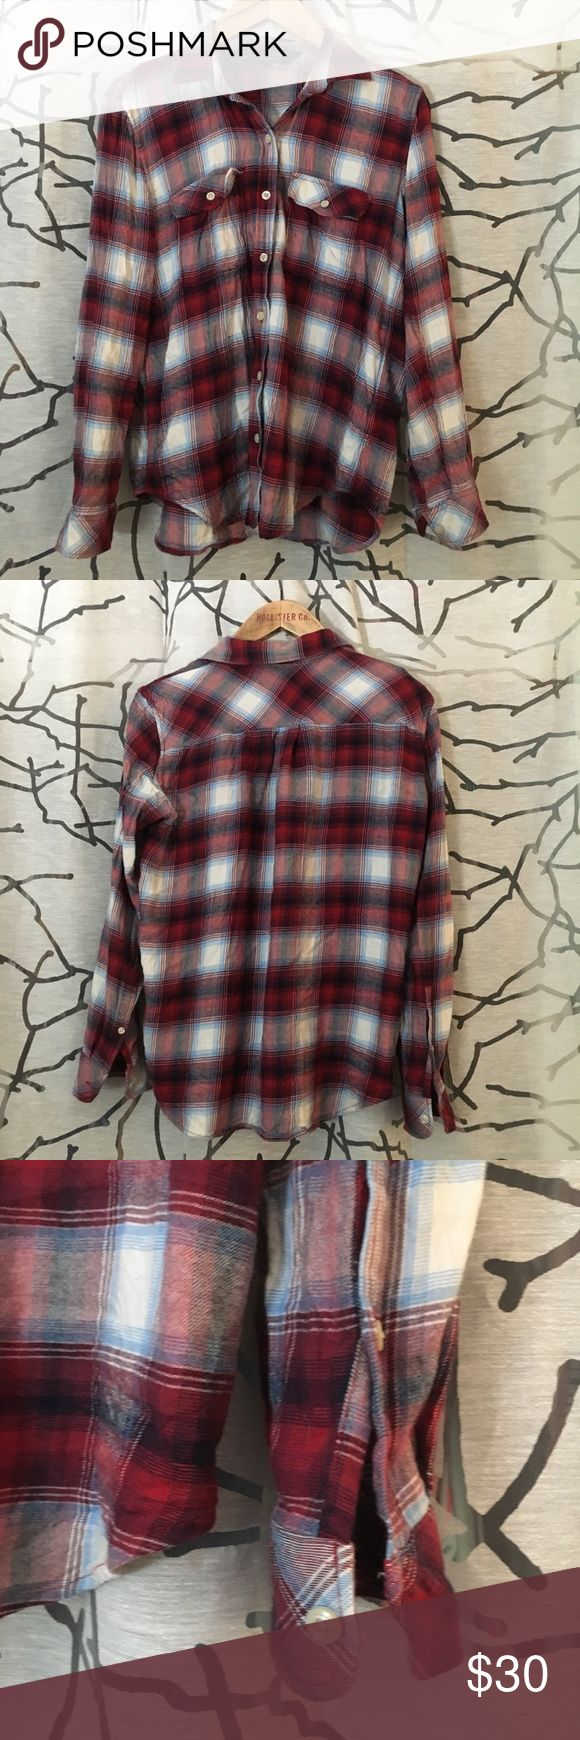 Red Pendleton flannel Buttery soft flannel from Pendleton. Size small and true to size. Could even fit an XS if you like it oversized. Really nice colors on this one. Washed in cold water and hung dry. Bought from gap. Pendleton brand. Pendleton Tops Button Down Shirts